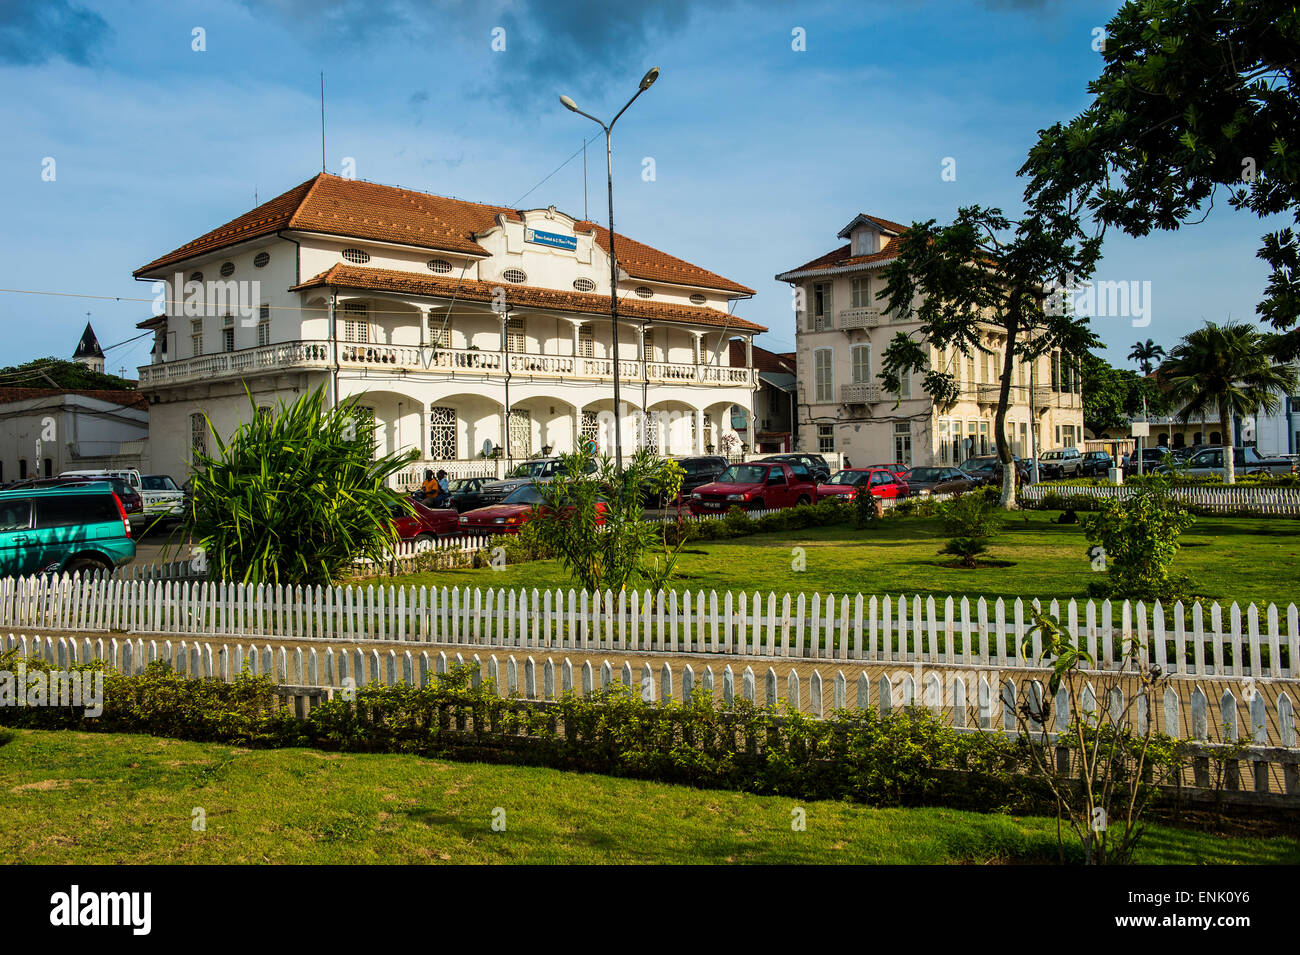 Colonial buildings on independence square in the city of Sao Tome, Sao Tome and Principe, Atlantic Ocean, Africa - Stock Image